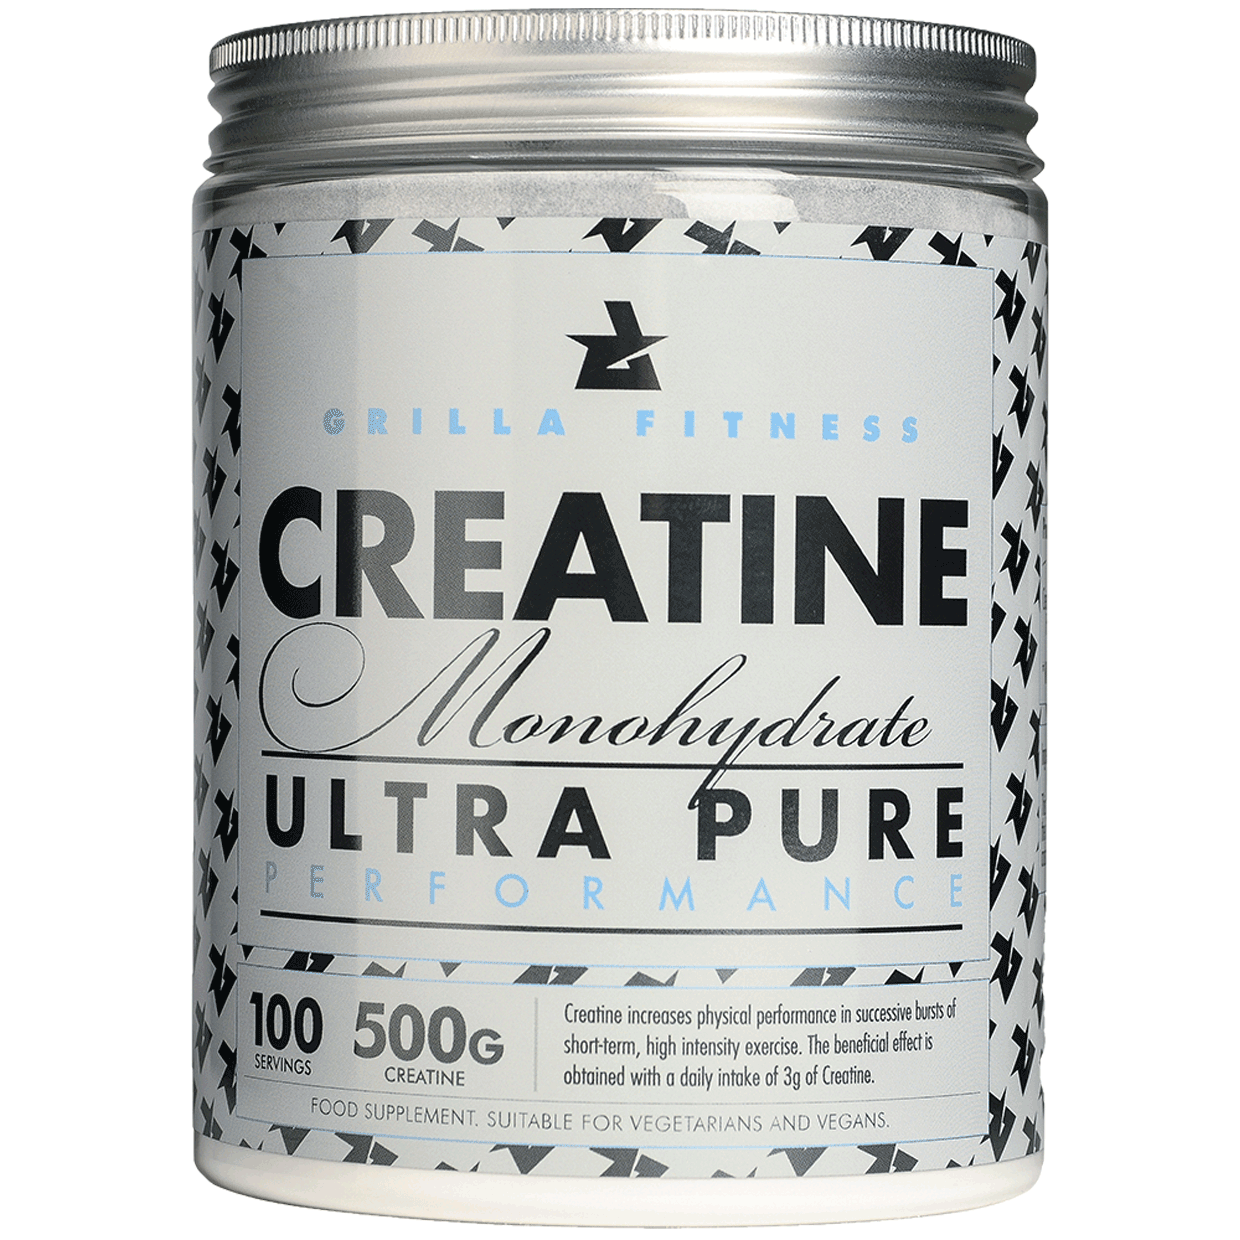 Creatine Monohydrate - 500g ULTRA PURE